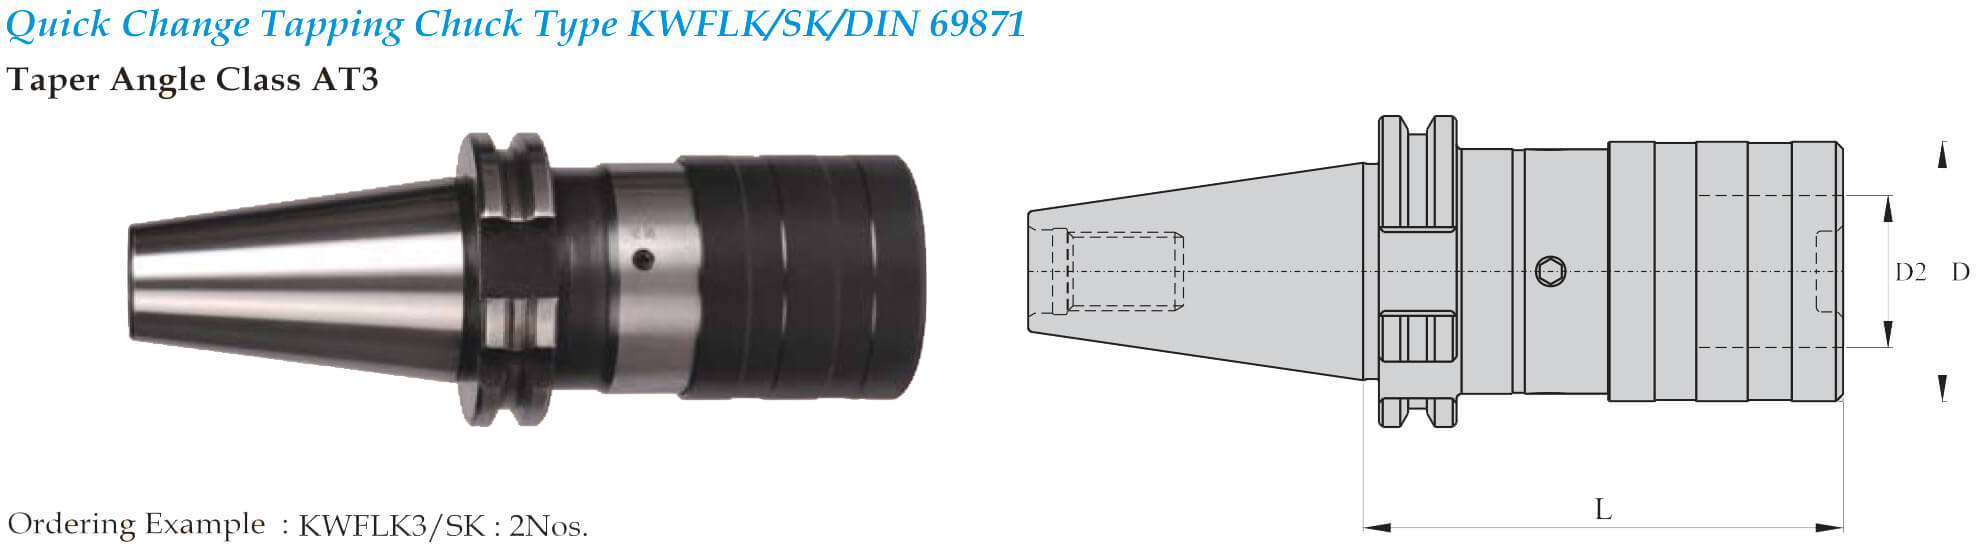 SK50 KWFLK3 139 TAPPING ATTACHMENT